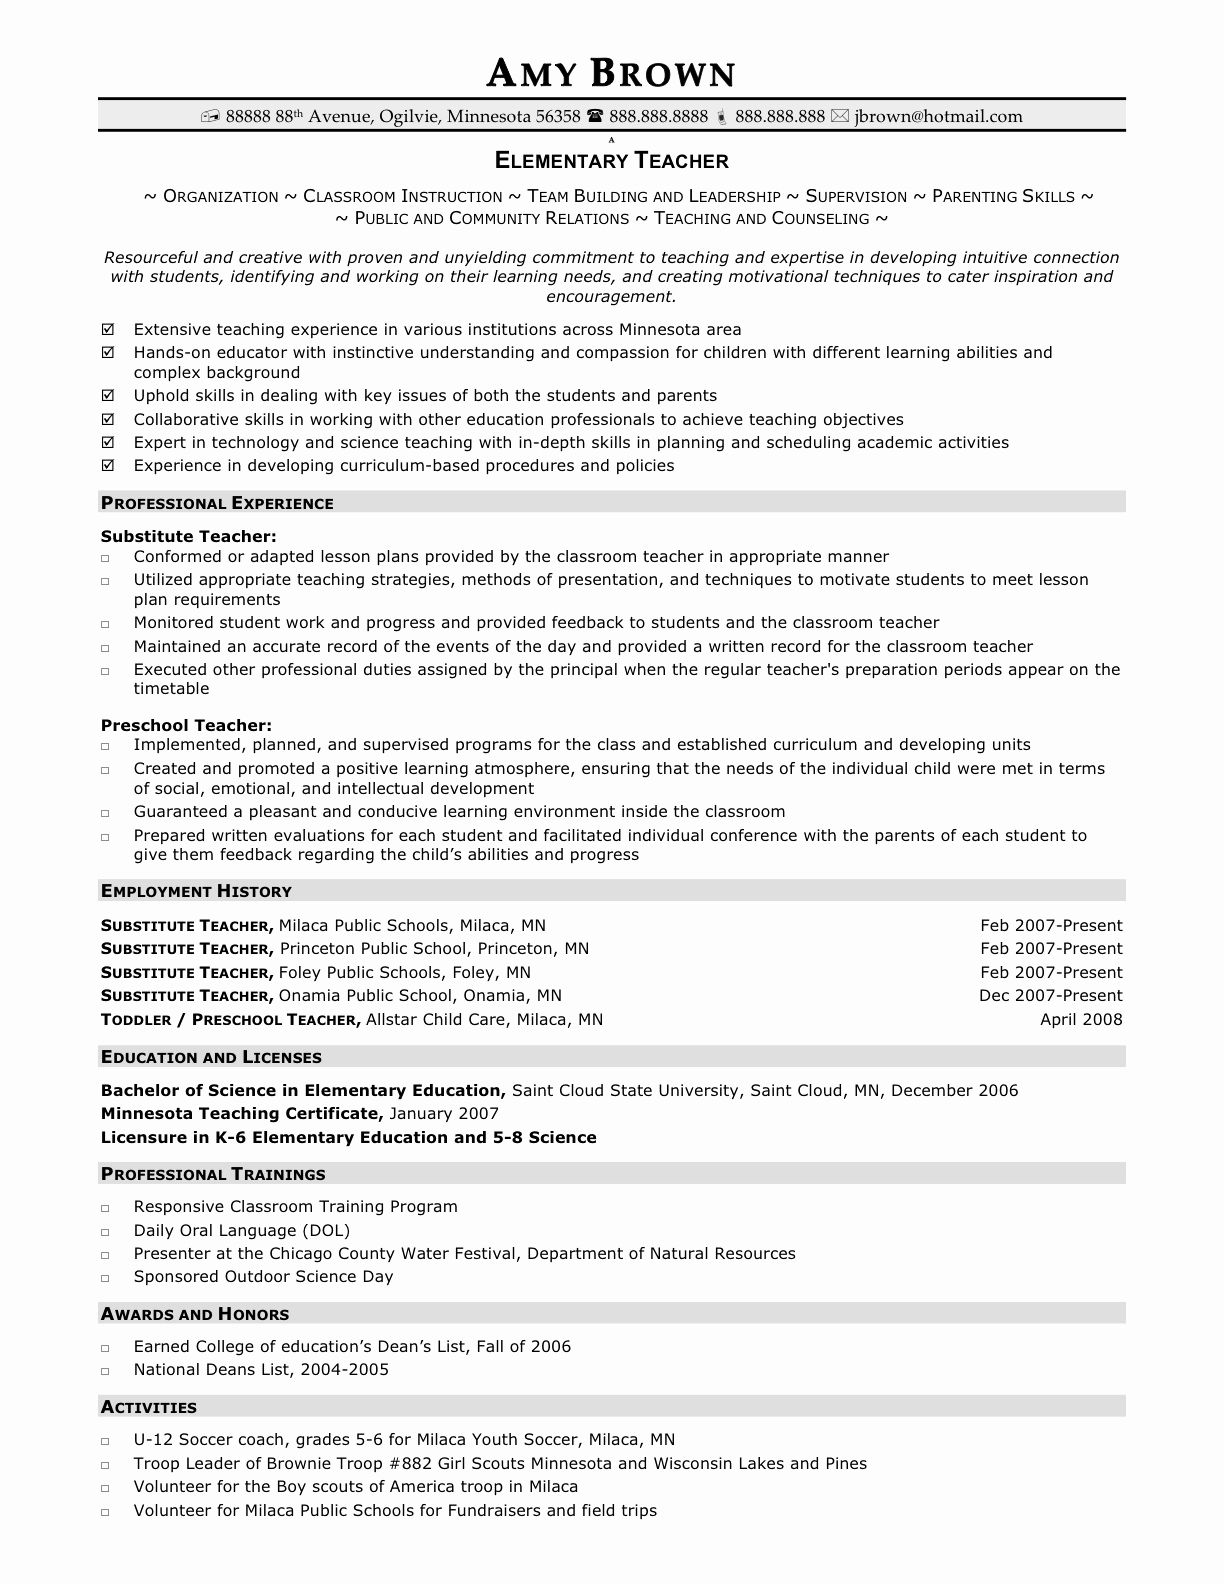 Best thesis proposal ghostwriters websites for university